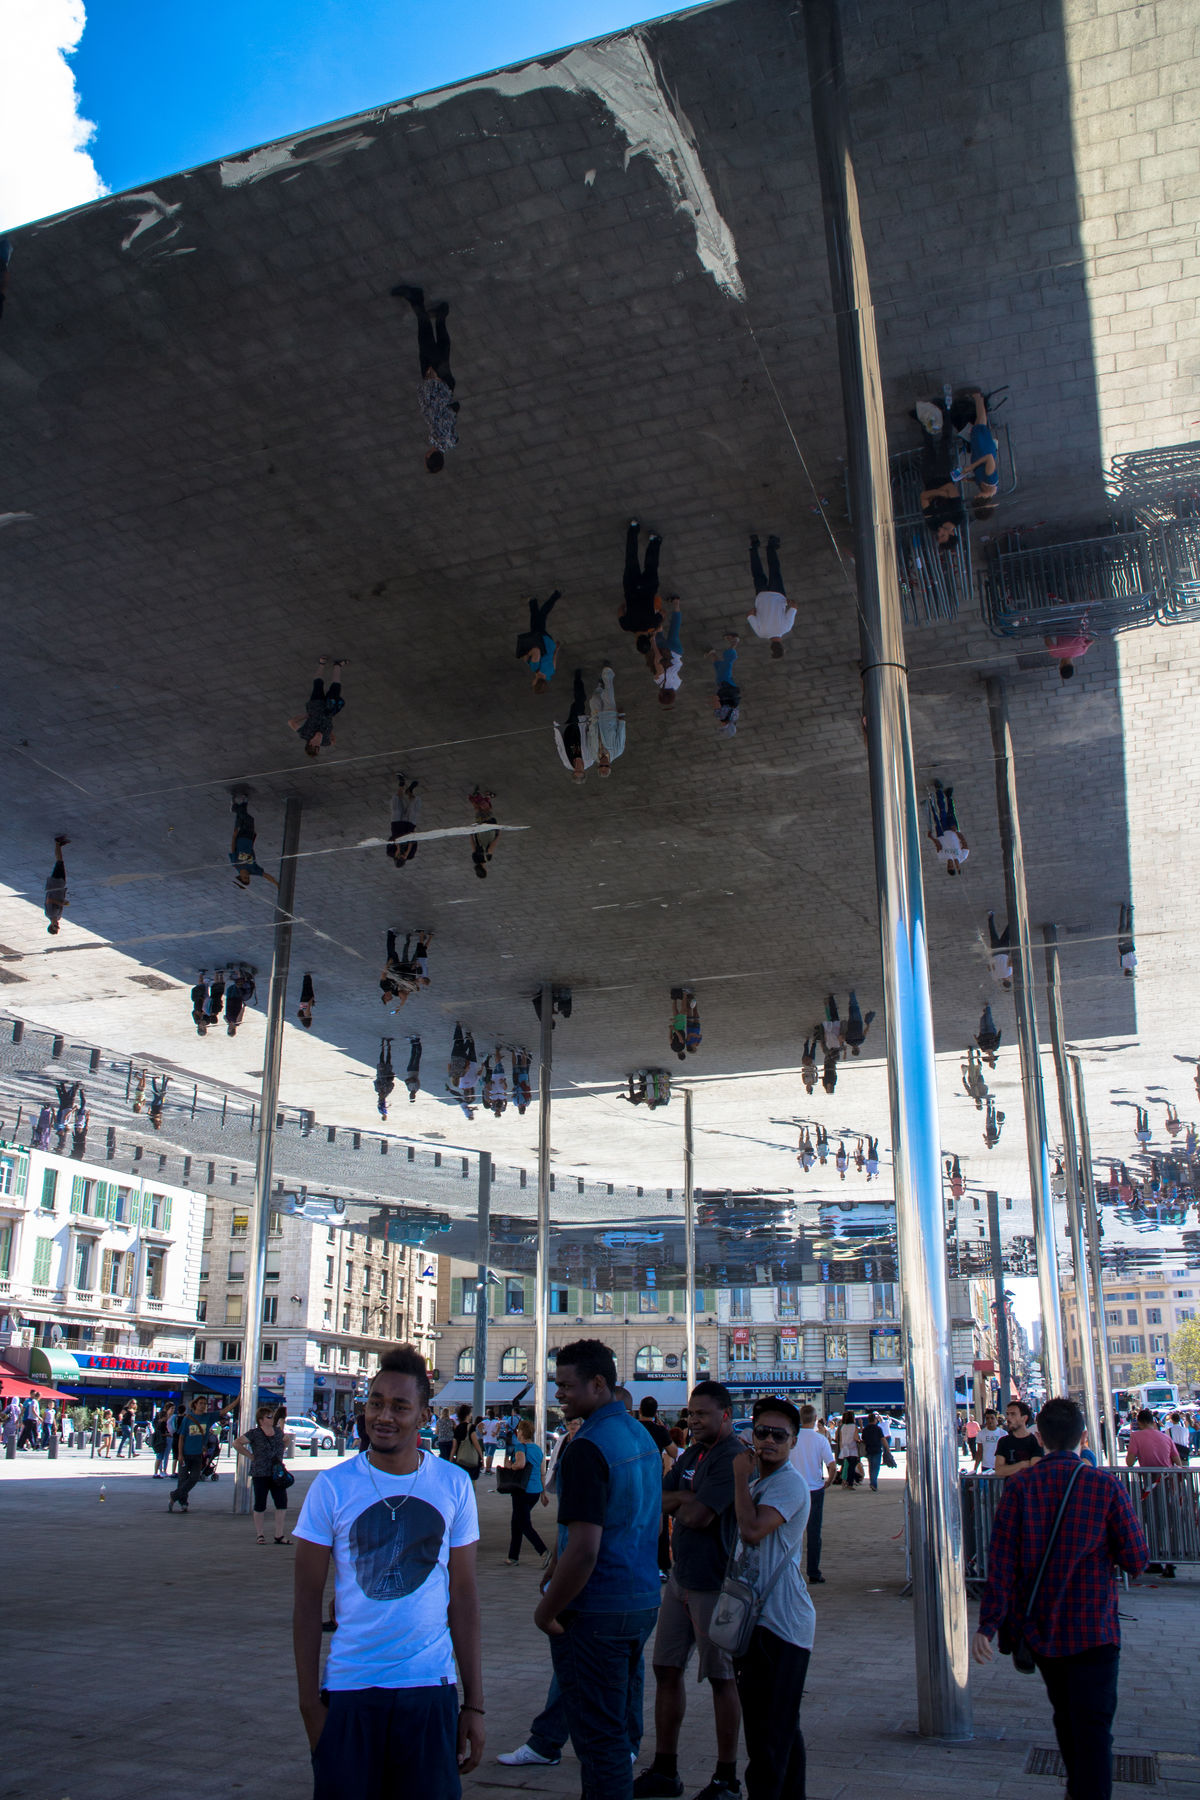 Norman Foster's pavillion in the old port of Marseille, France. Architecture Art France French Large Group Of People Leisure Activity Marseille Mirror Pavilon Public Public Art Reflection Reflective Square Structure Town